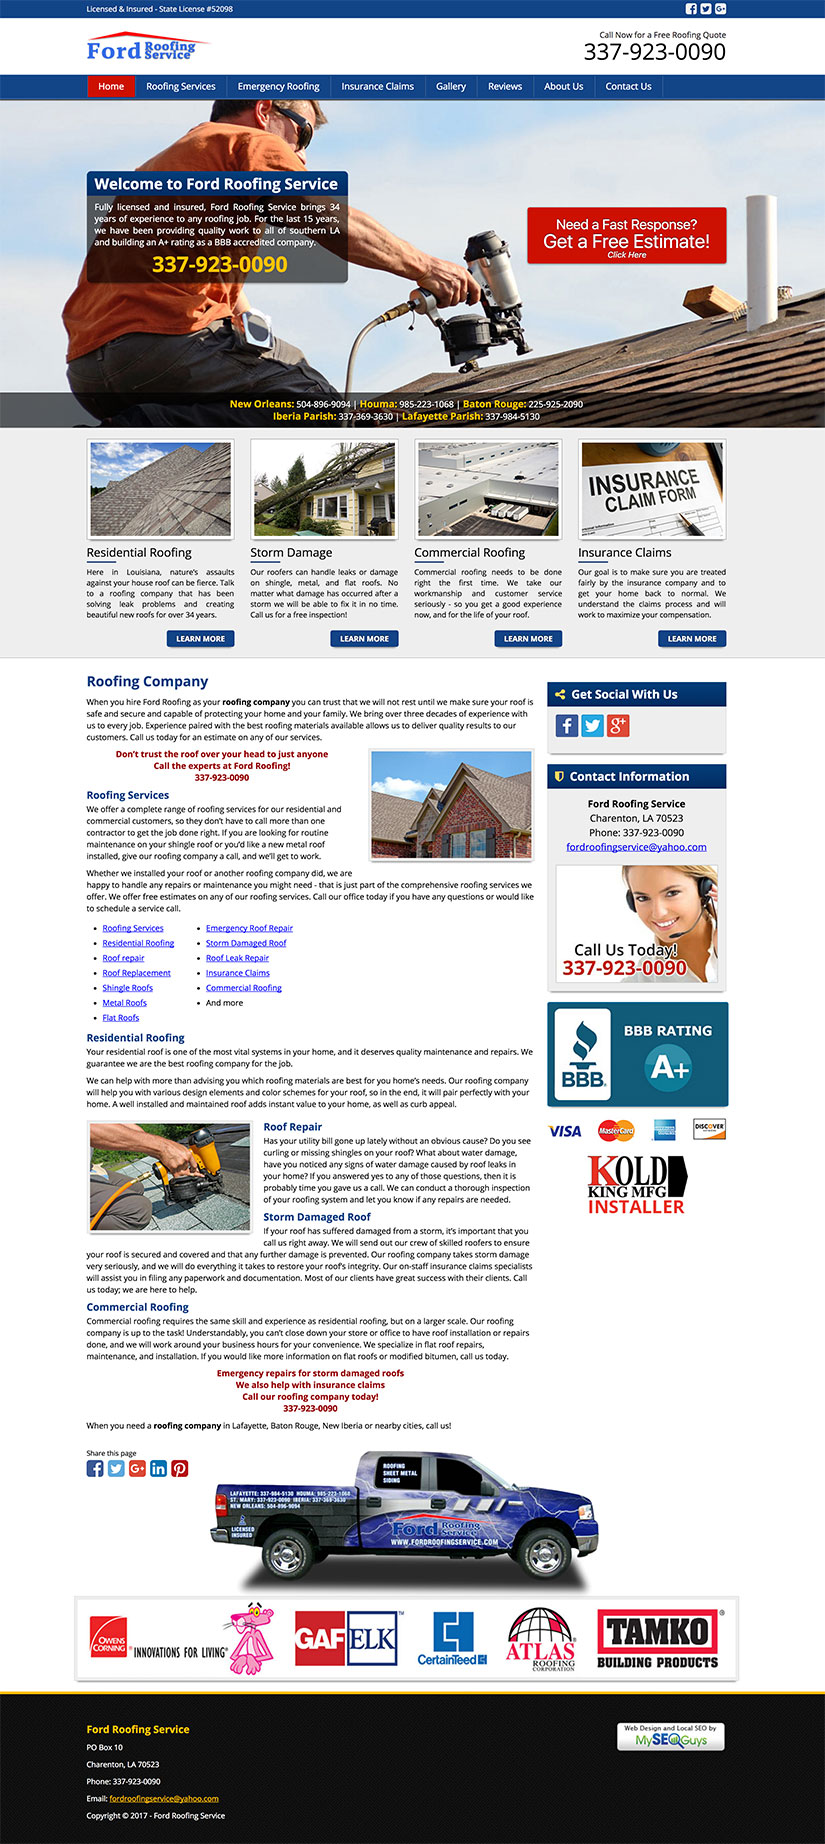 Web Design by Kustom Kode, LLC